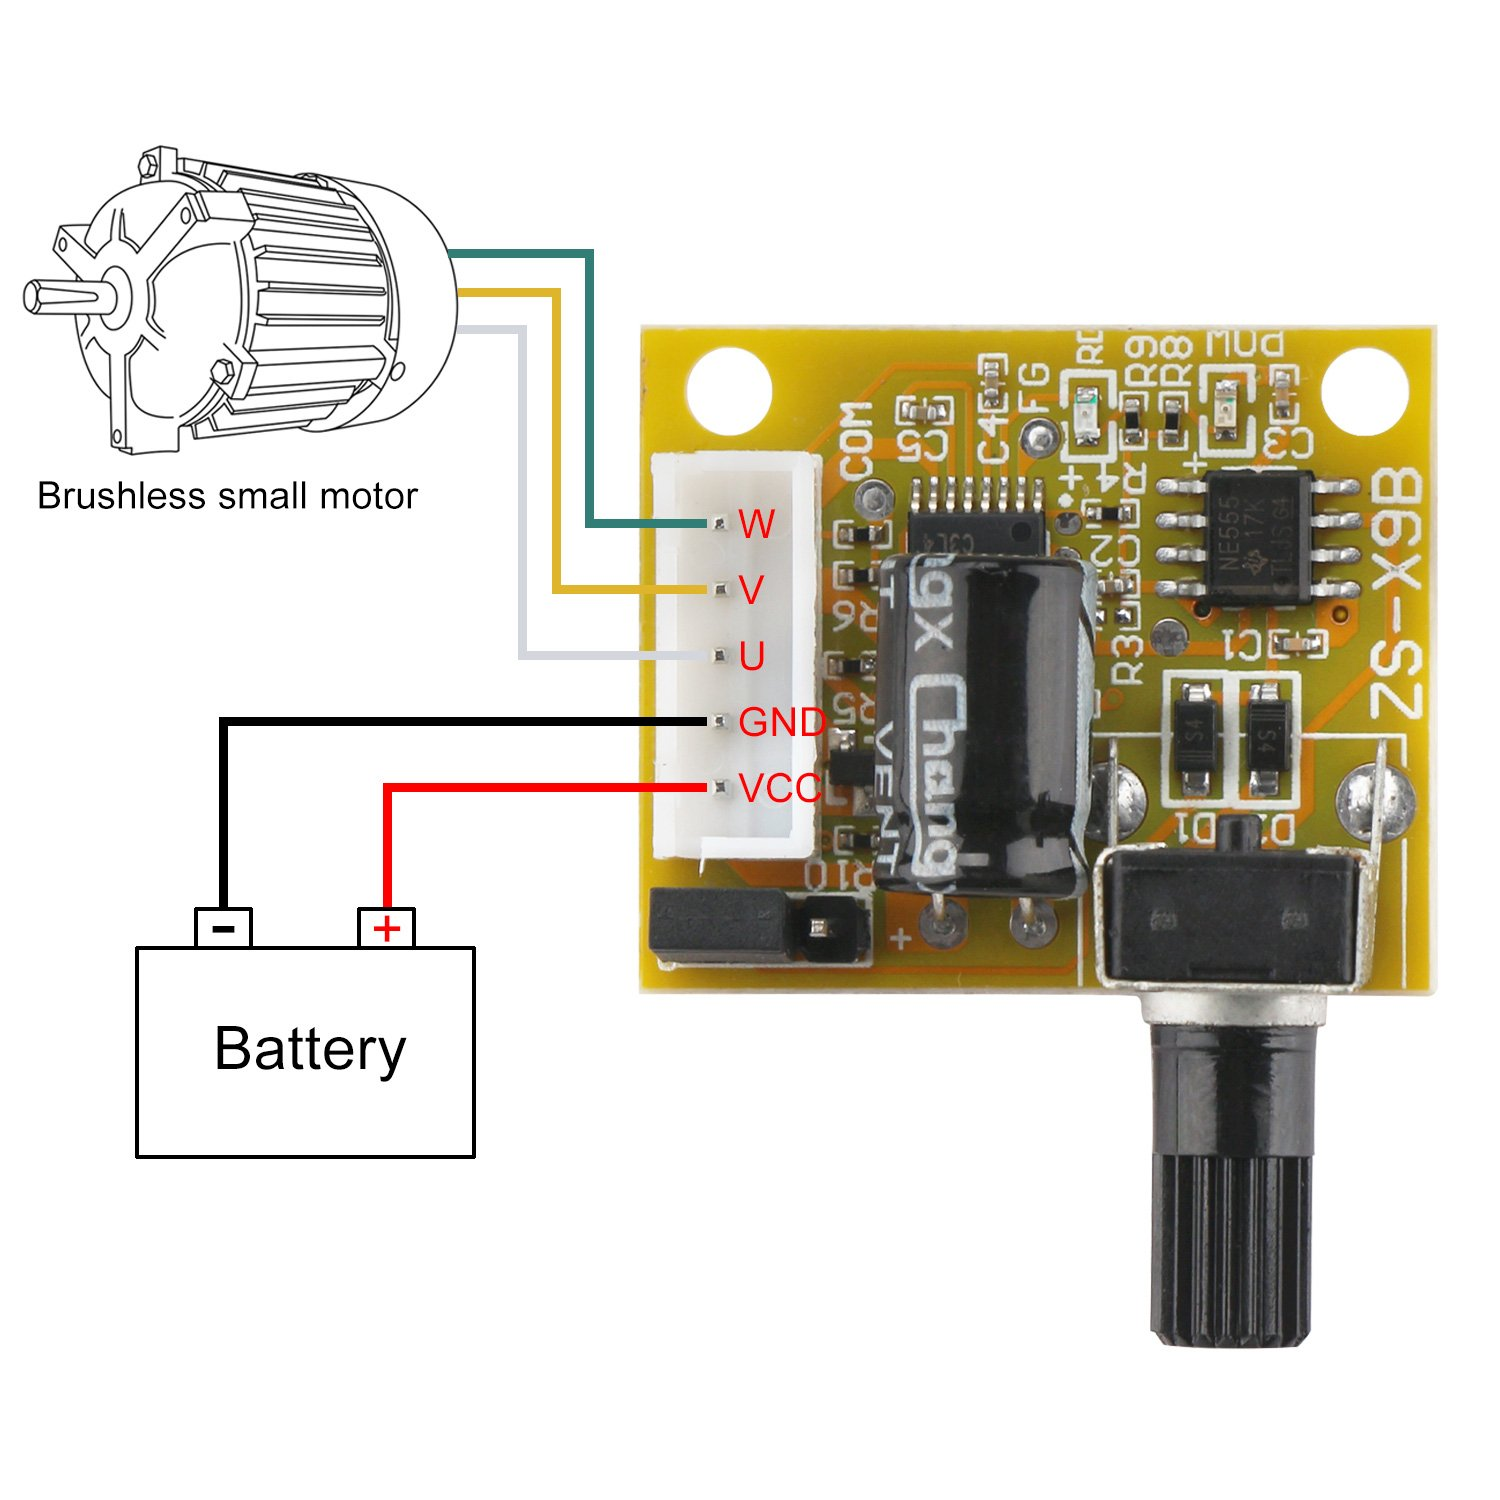 Drok Mini Bldc 3 Phase Brushless Sensorless Motor Driver Control Dc Circuit 5v 12v 15w Speed Regulator Controller With Knob